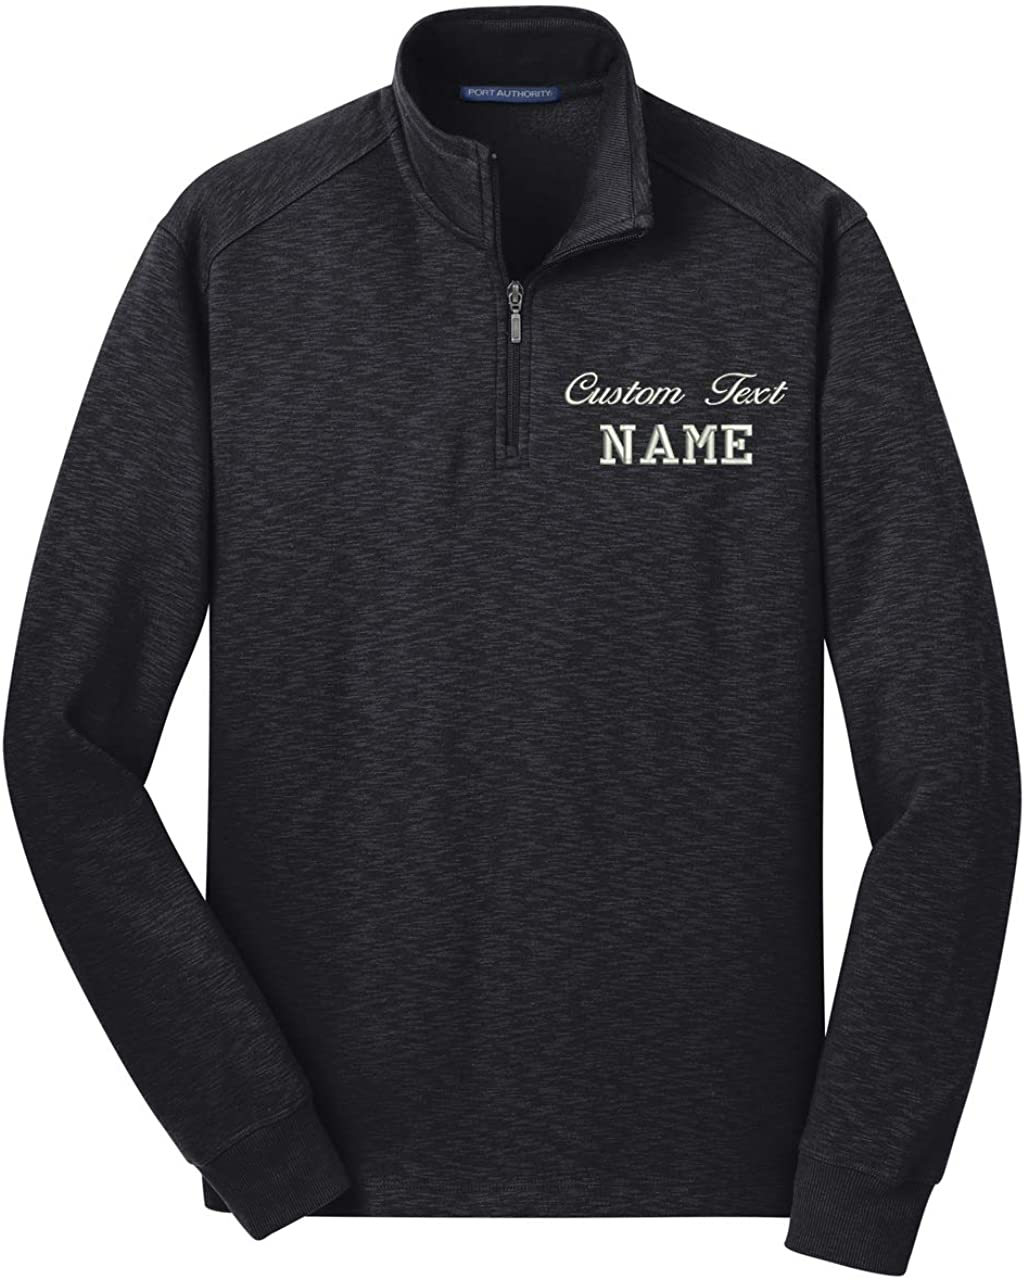 INK STITCH Men Custom Stitching Text Slub Fleece 1/4 Zip Pullover Zip Up - 3 Colors